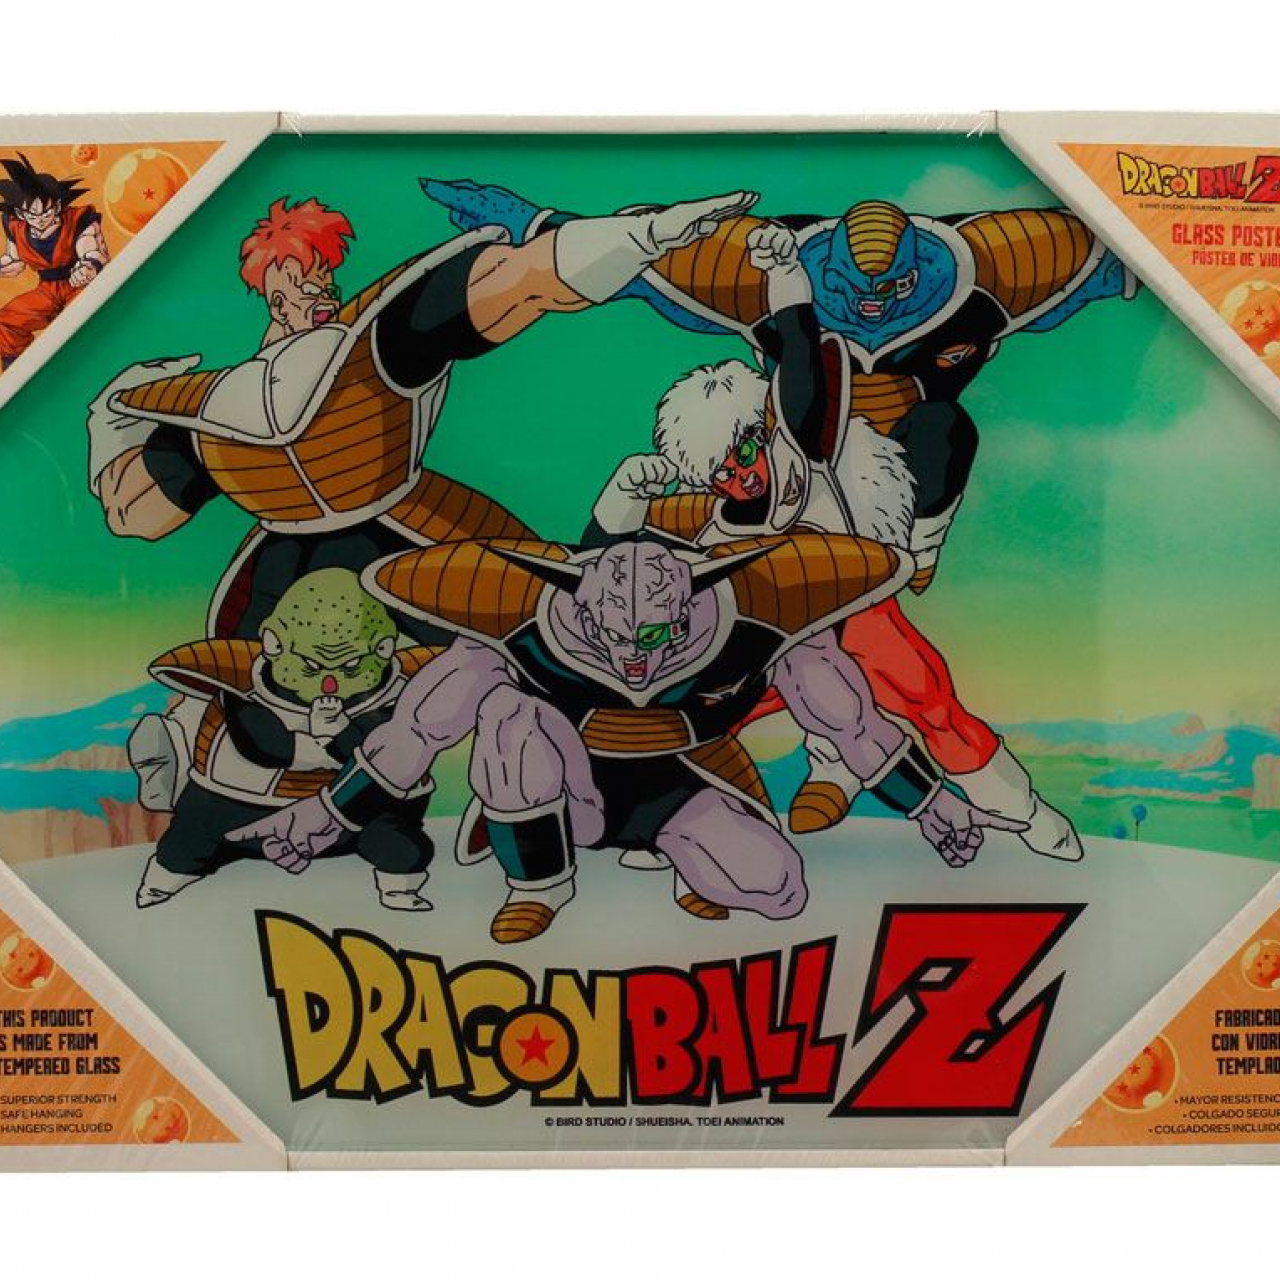 Dragonball Z Glass Poster Special Forces 30 x 40 cm